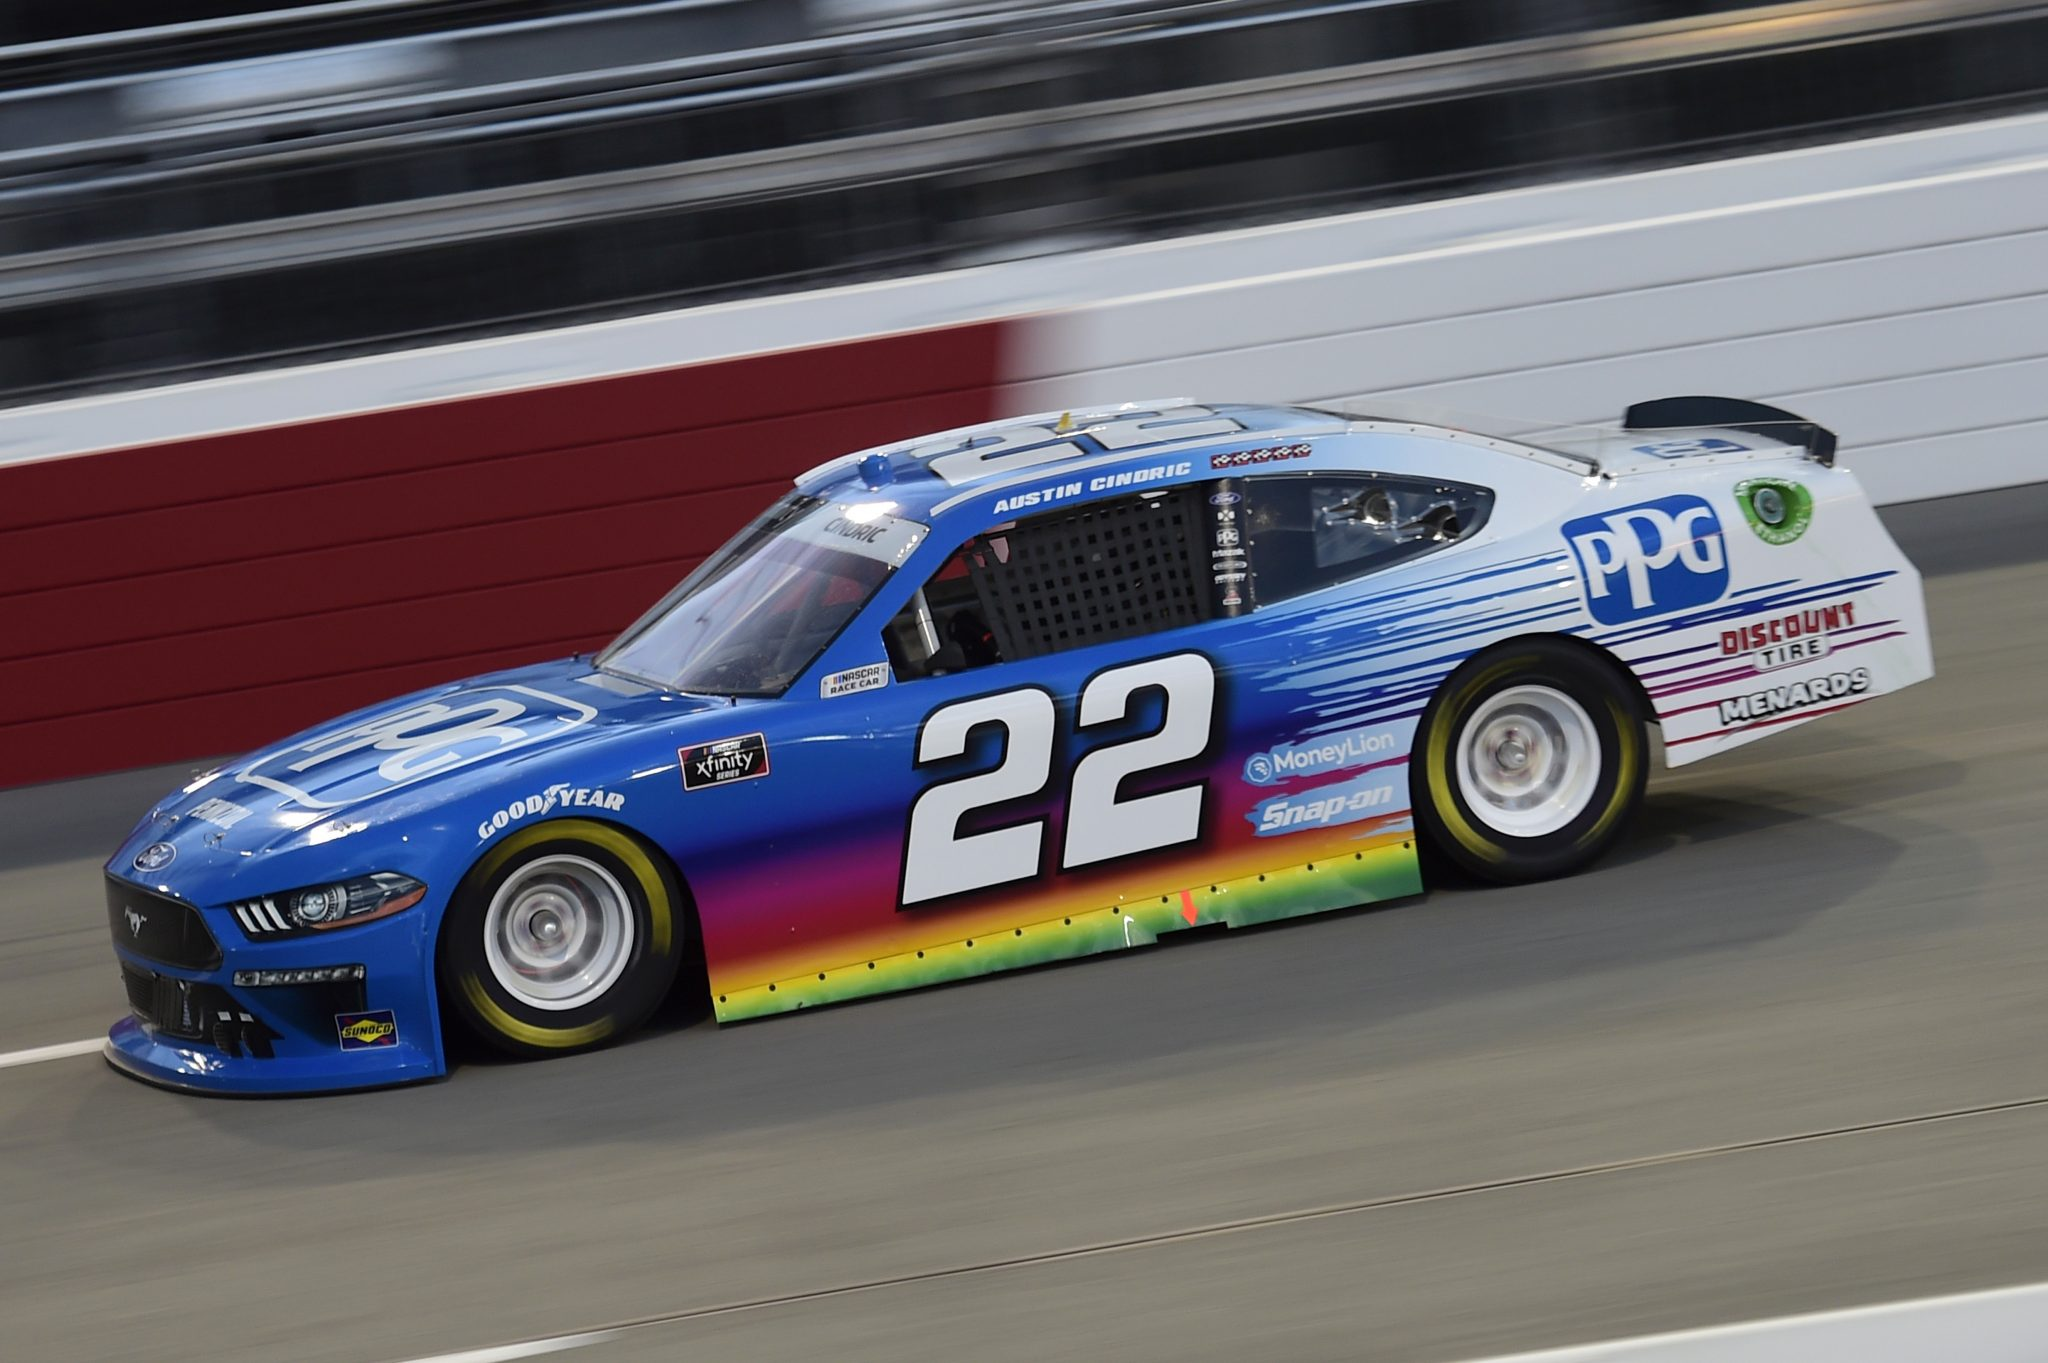 RICHMOND, VIRGINIA - SEPTEMBER 11: Austin Cindric, driver of the #22 MoneyLion Ford, drives during the NASCAR Xfinity Series Go Bowling 250 at Richmond Raceway on September 11, 2020 in Richmond, Virginia. (Photo by Jared C. Tilton/Getty Images) | Getty Images